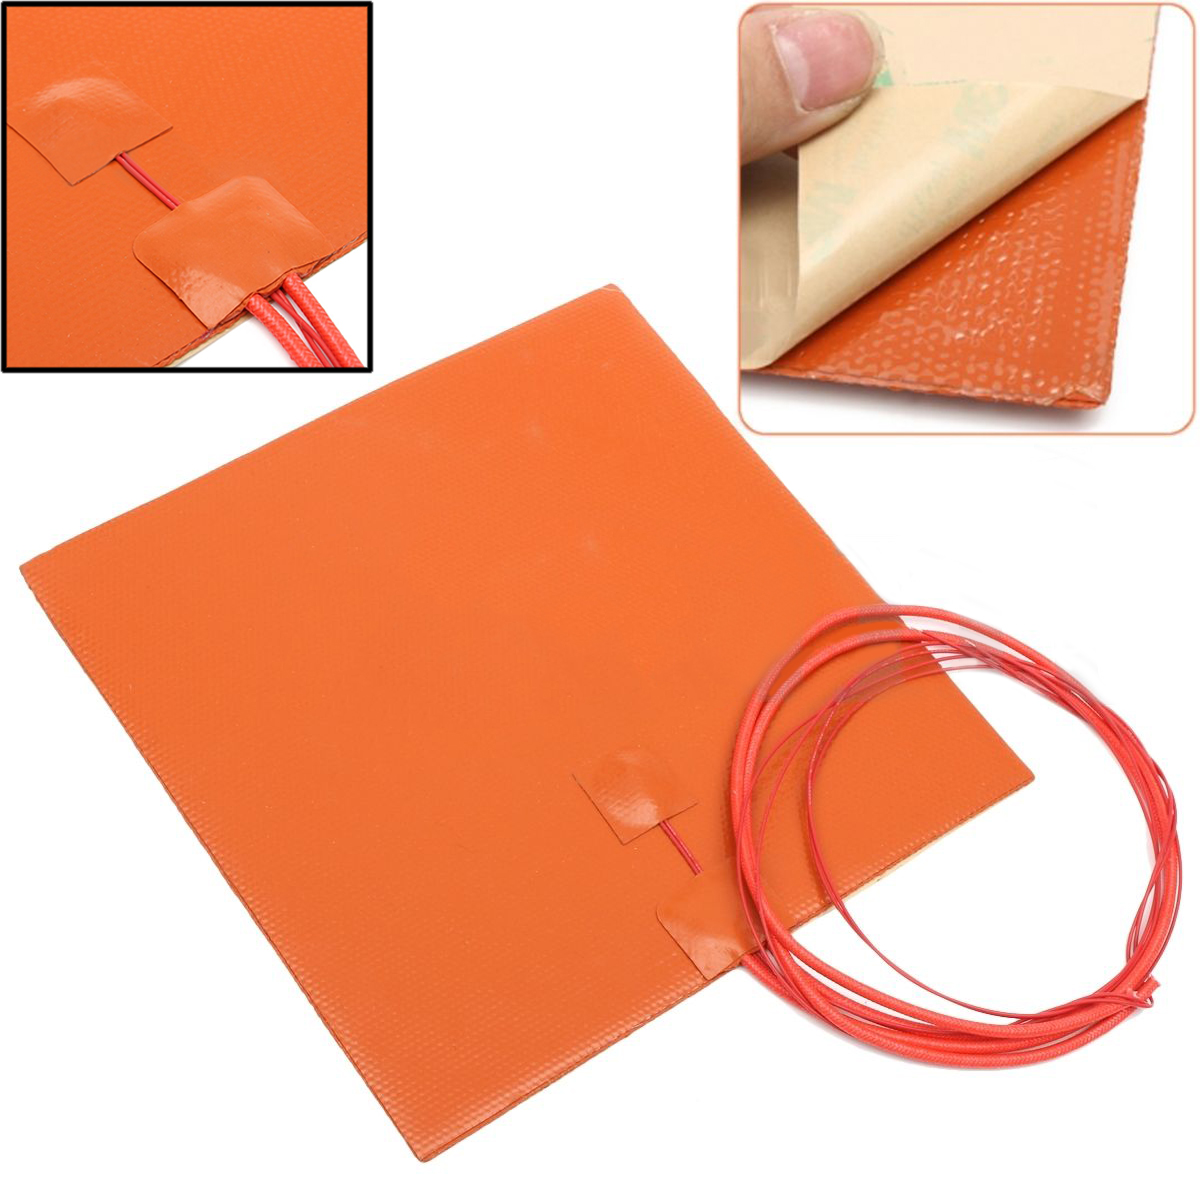 DWZ New 200W 12V 200*200mm Silicone Heater Pad For 3D Printer Heated Bed Heating Mat 150x150mm 150w 12v silicone heater pad for 3d printer heated bed 3m psa ntc100k silicone heating element pad mat flexible heater